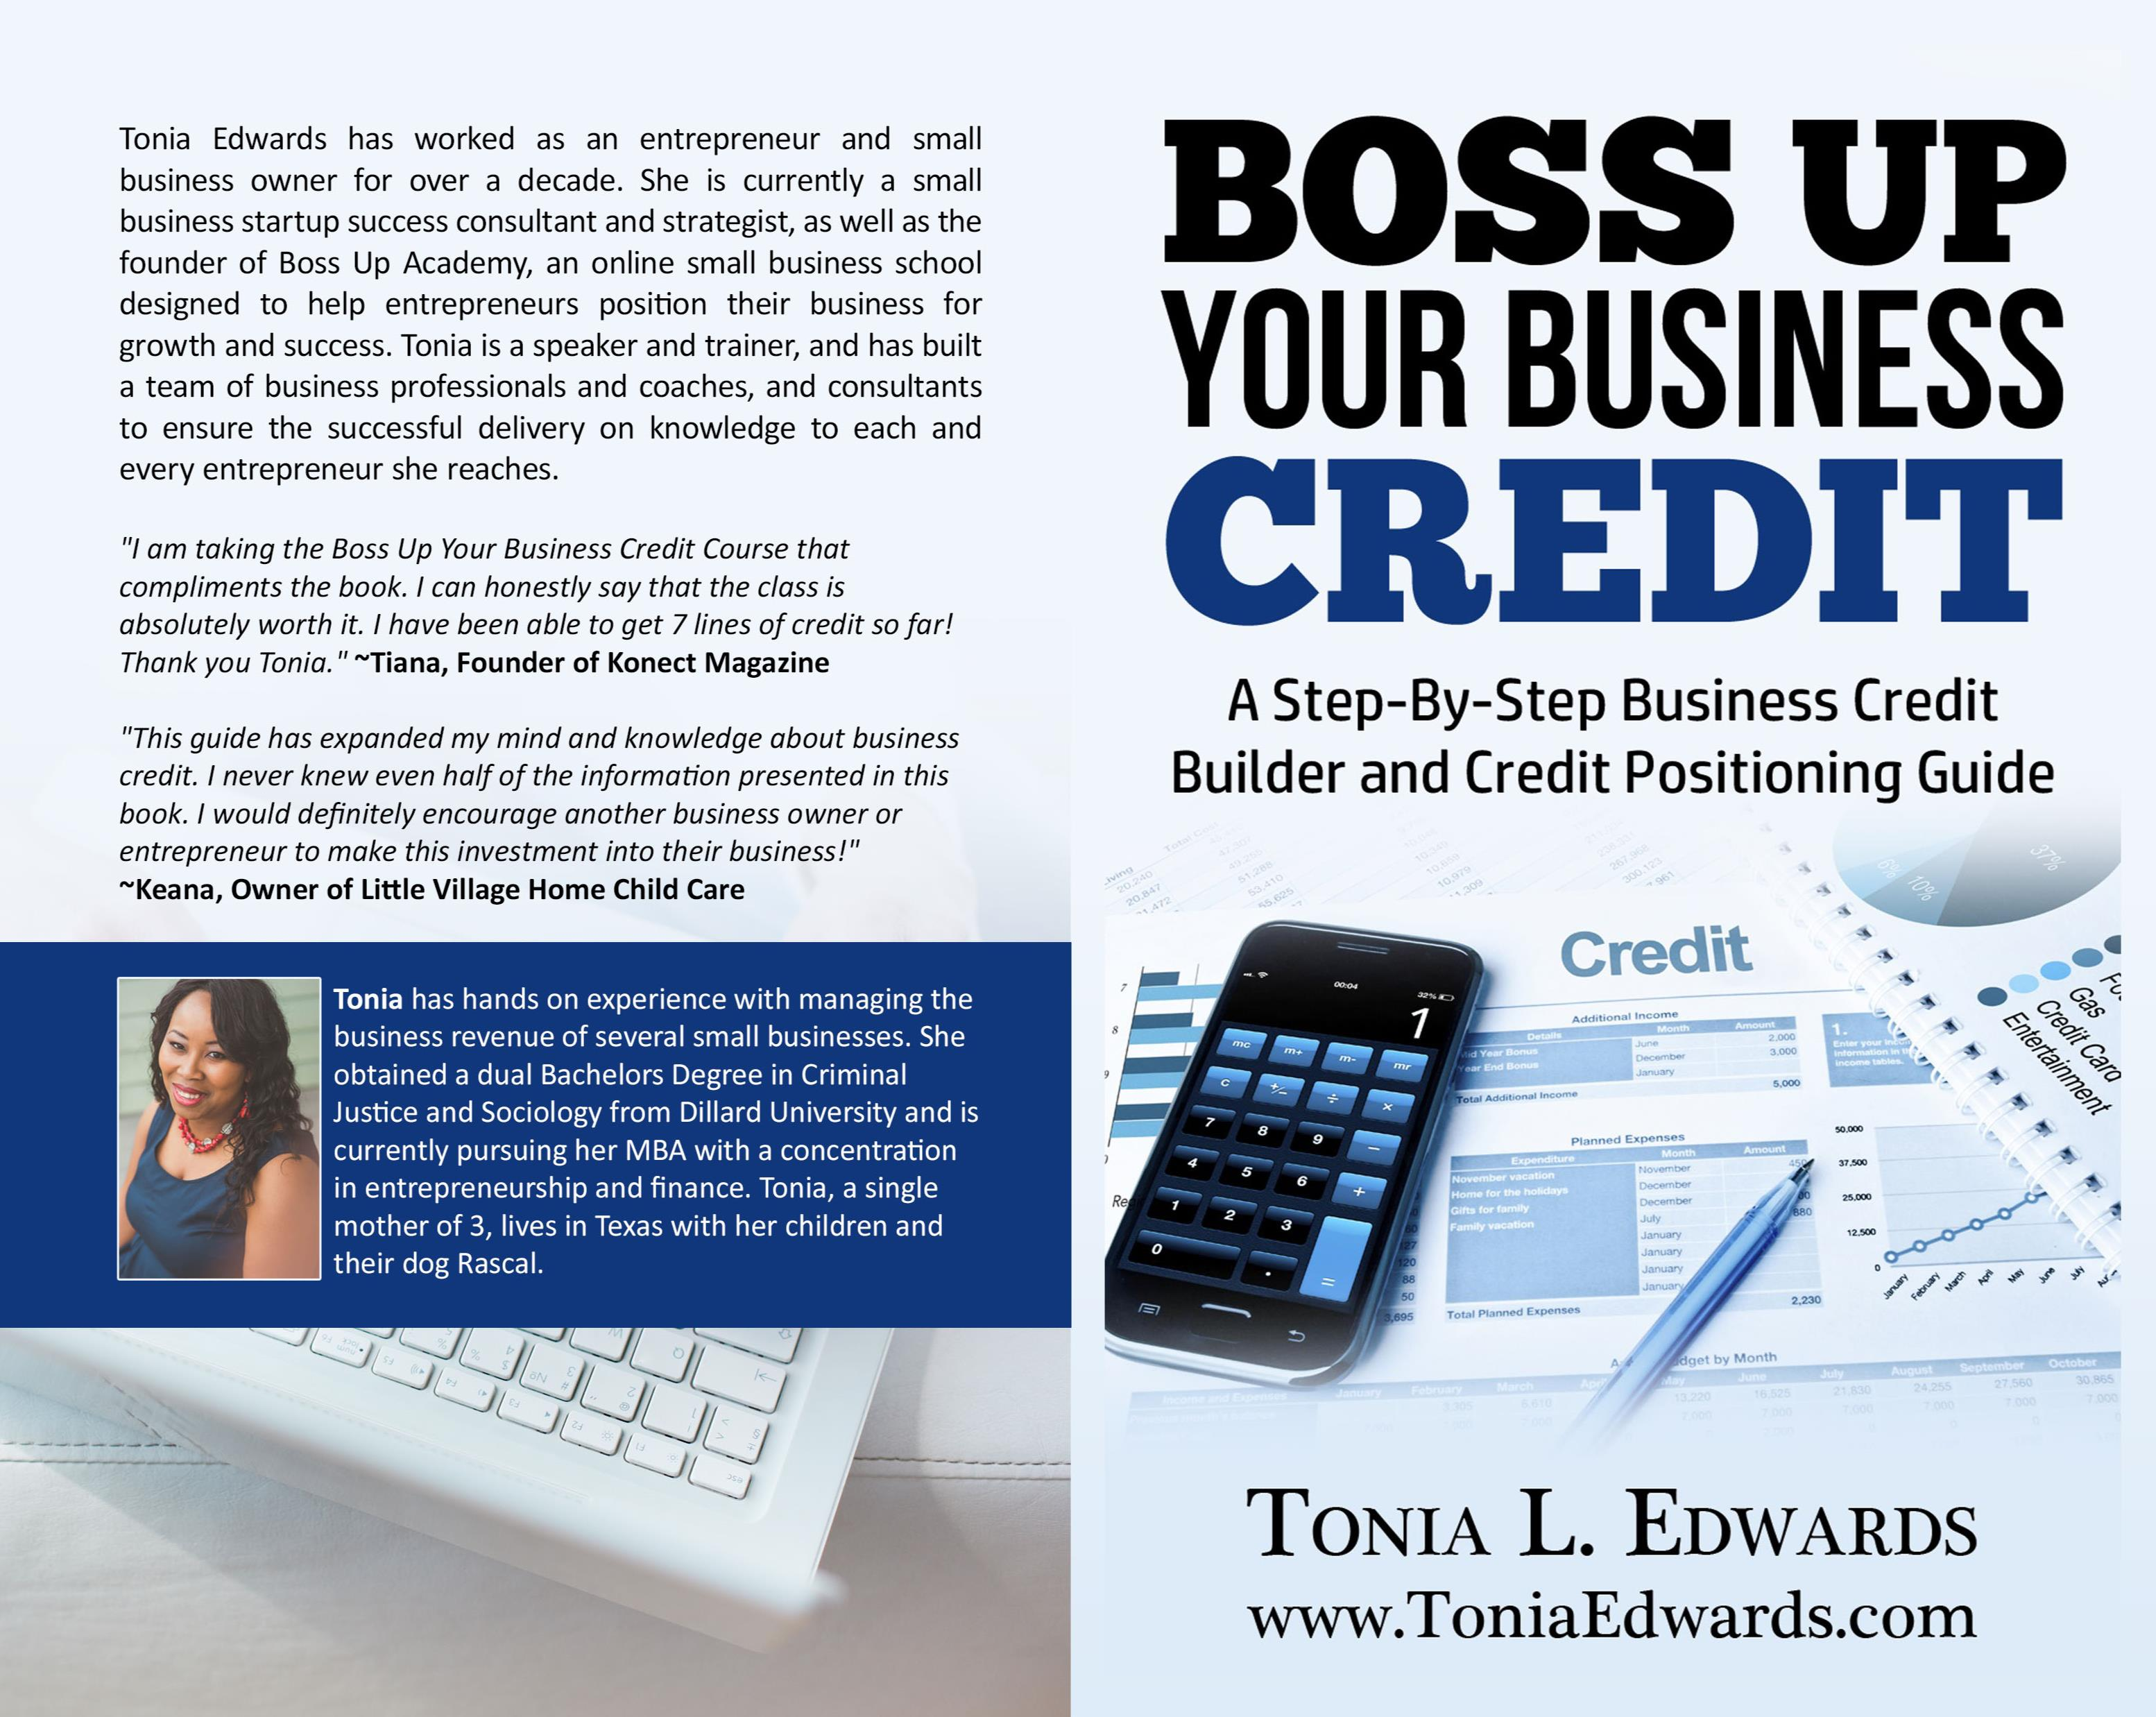 boss up your business credit by tonia edwards    24 95